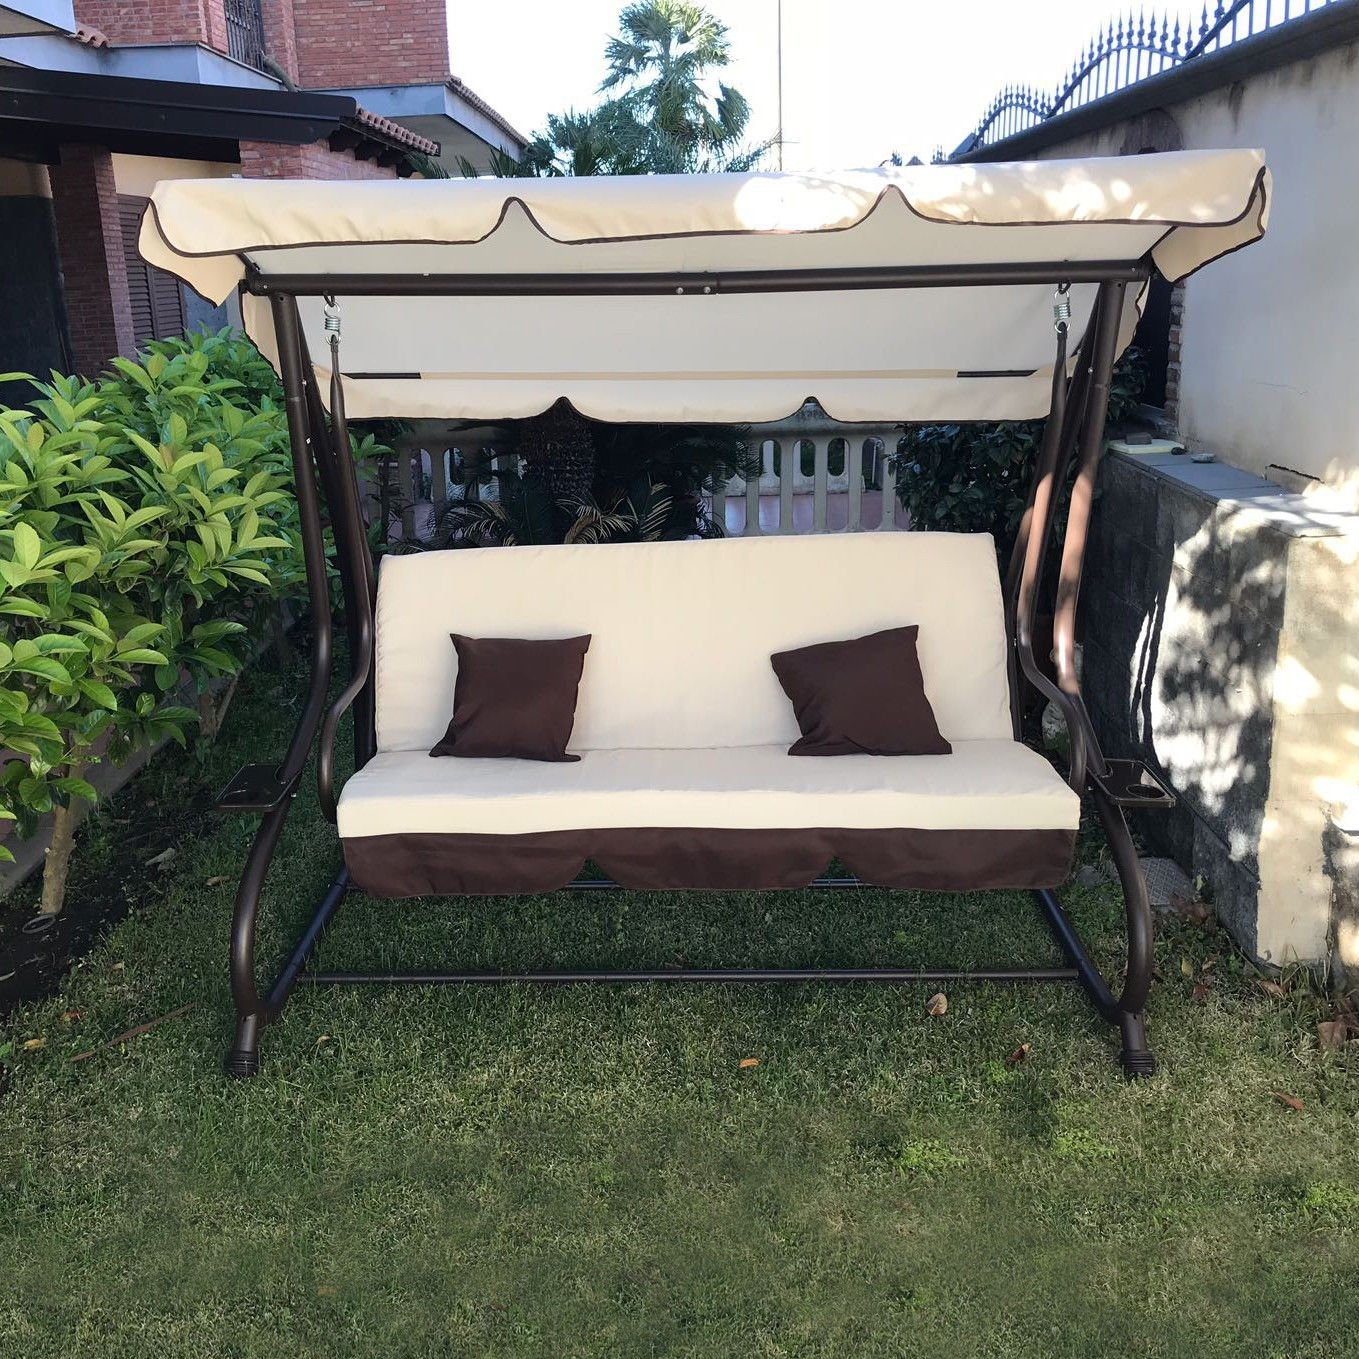 Sofa Beds Online Nz Garden Swing 3 Seater With Sun Roof Sofa Bed Swing Tilt By Fp Tech